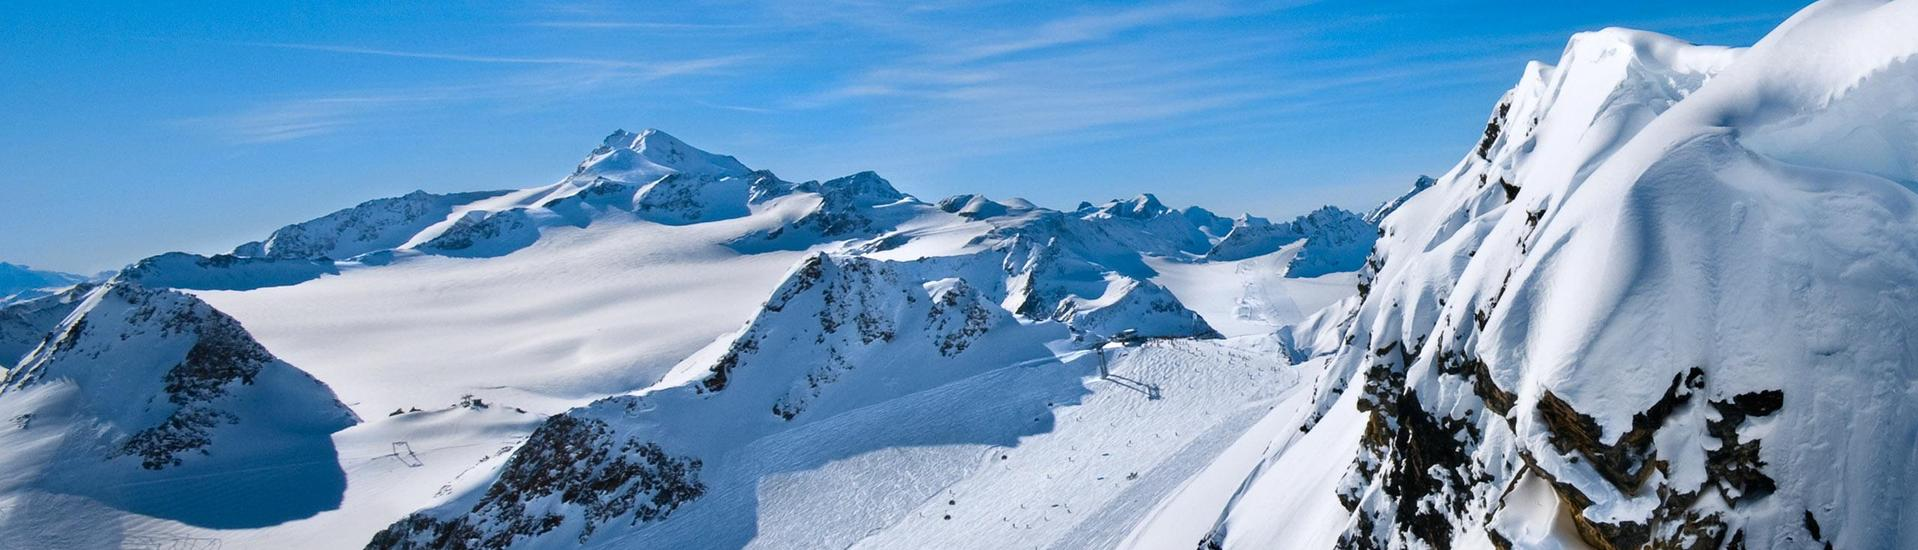 A view of a snowy mountain top in the ski resort of Châtel, where ski schools gather to start their ski lessons.